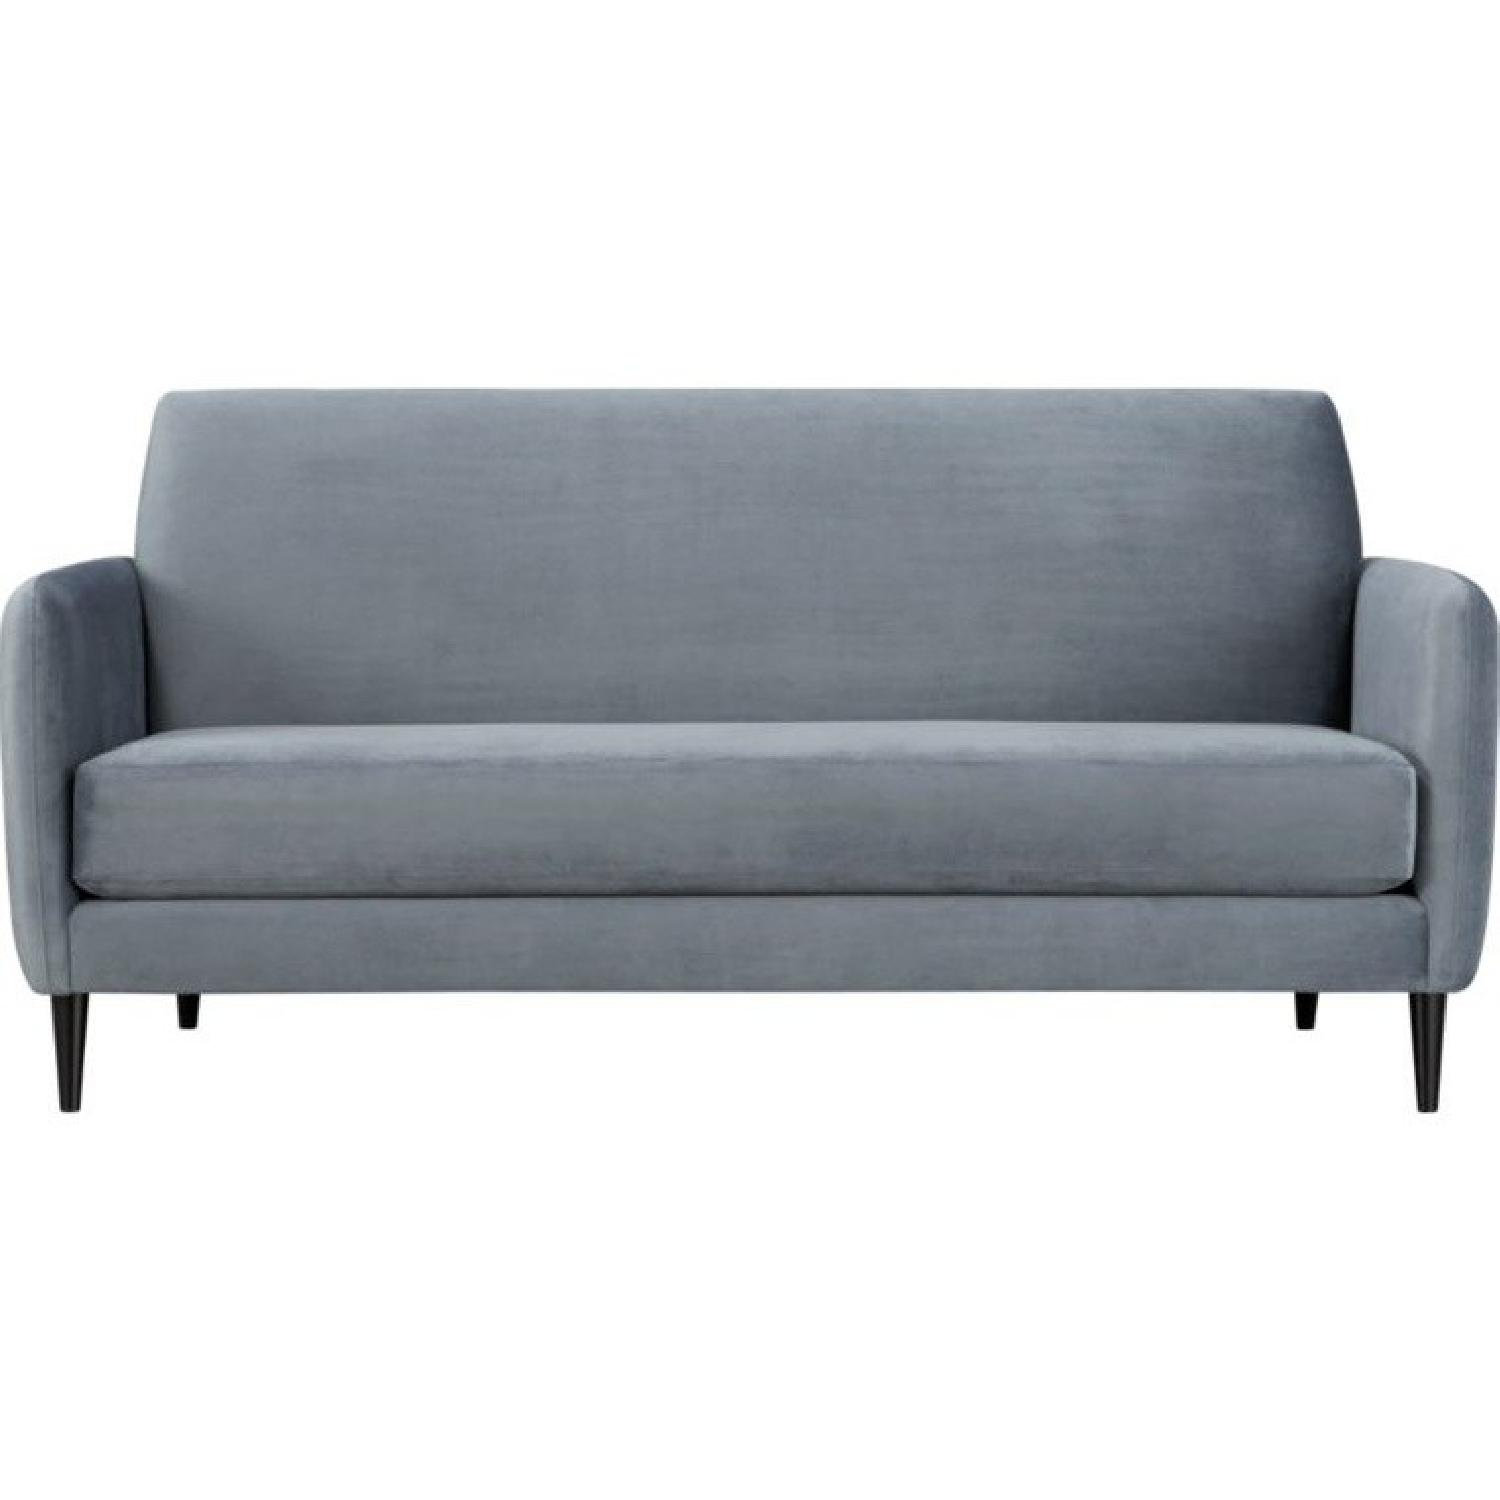 Navy Blue Velvet Sofa Blue Velvet Couch Royal Blue